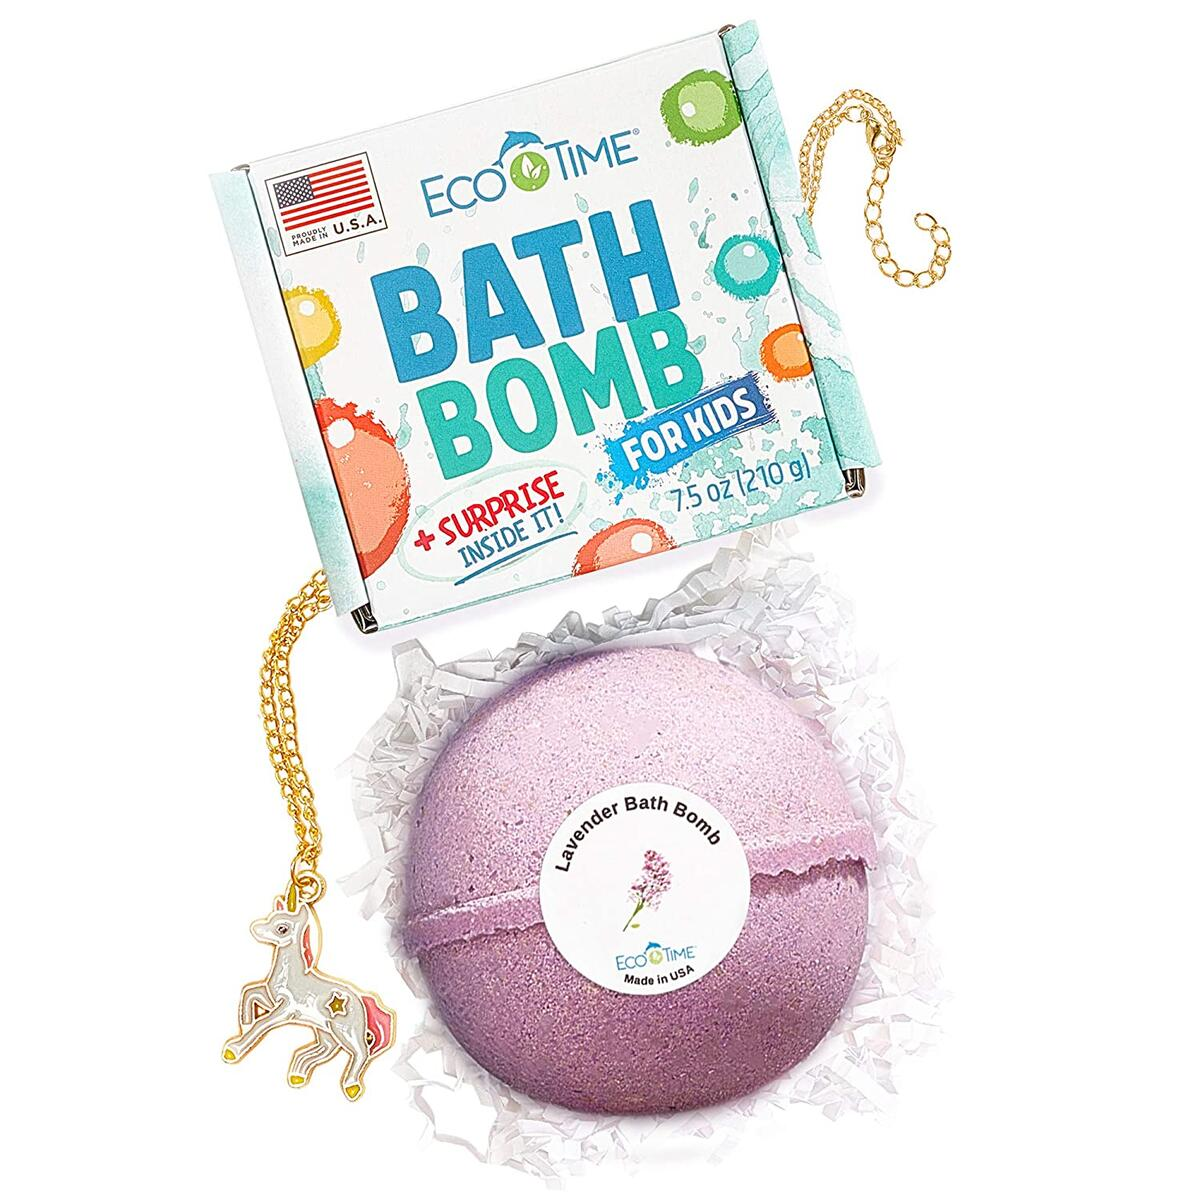 HANDMADE in USA - 7.5 oz Extra Large Bath Bomb - Natural and Organic - Gift Idea for Women Teens Girlfriend Kids – Bubble Bombs Lavender